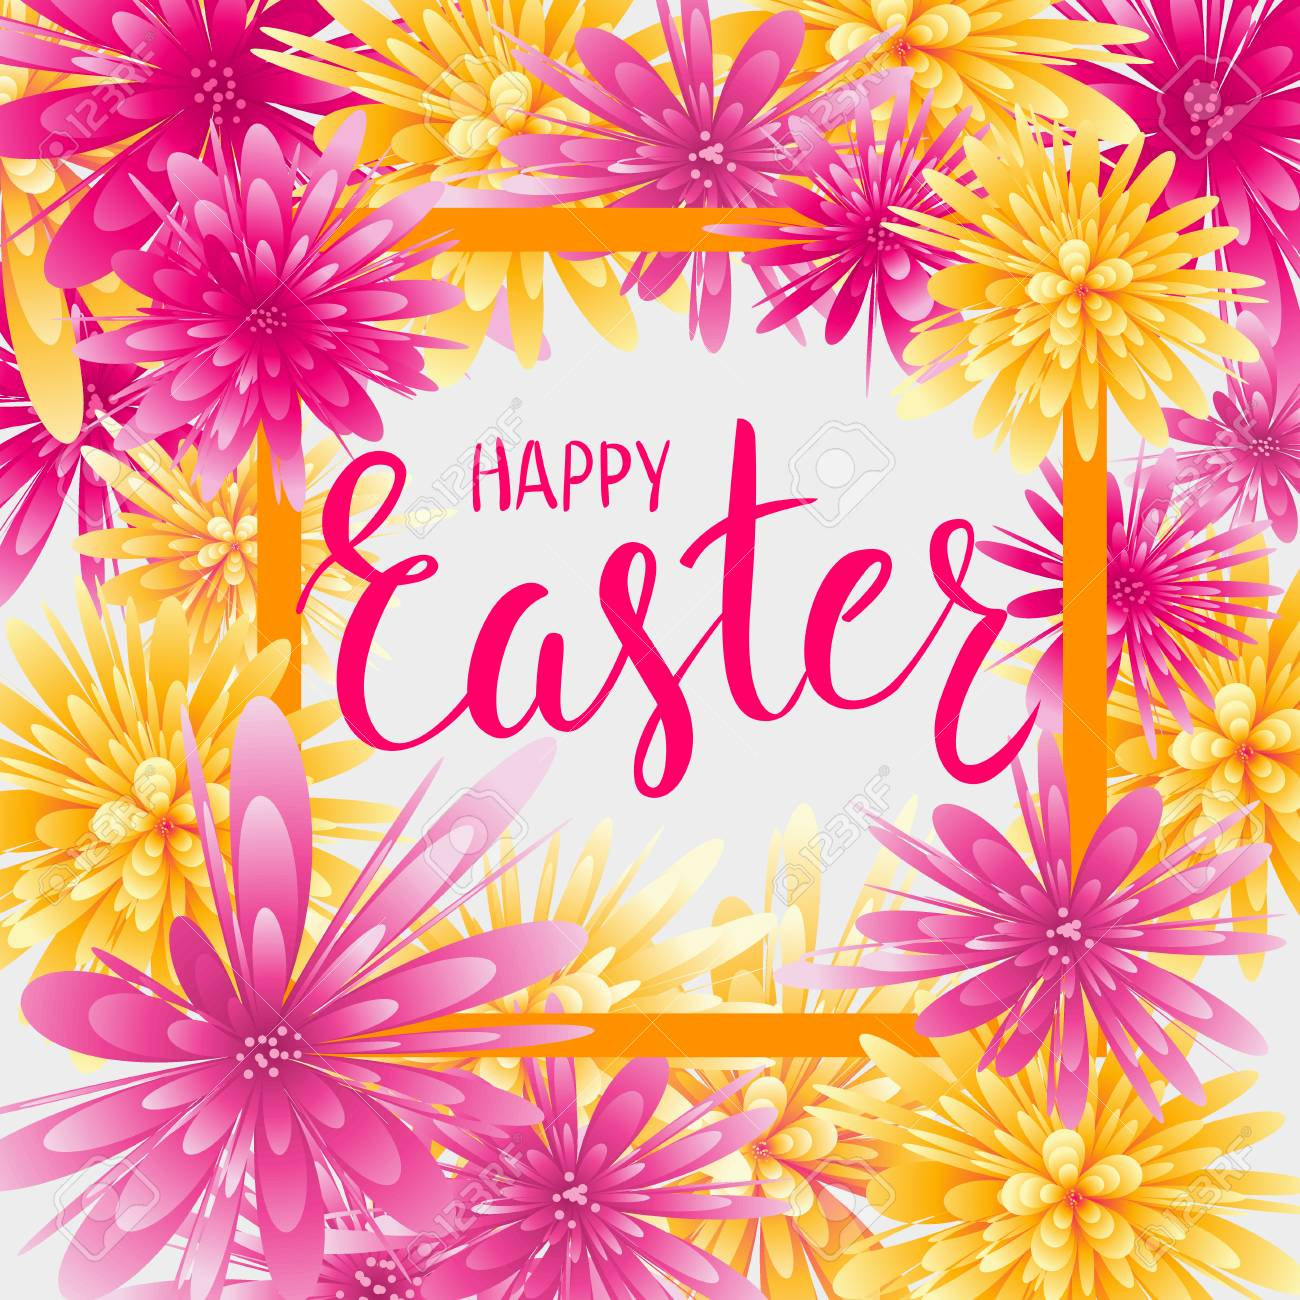 Happy Easter Greeting Card With Abstract Flowers And Watercolor